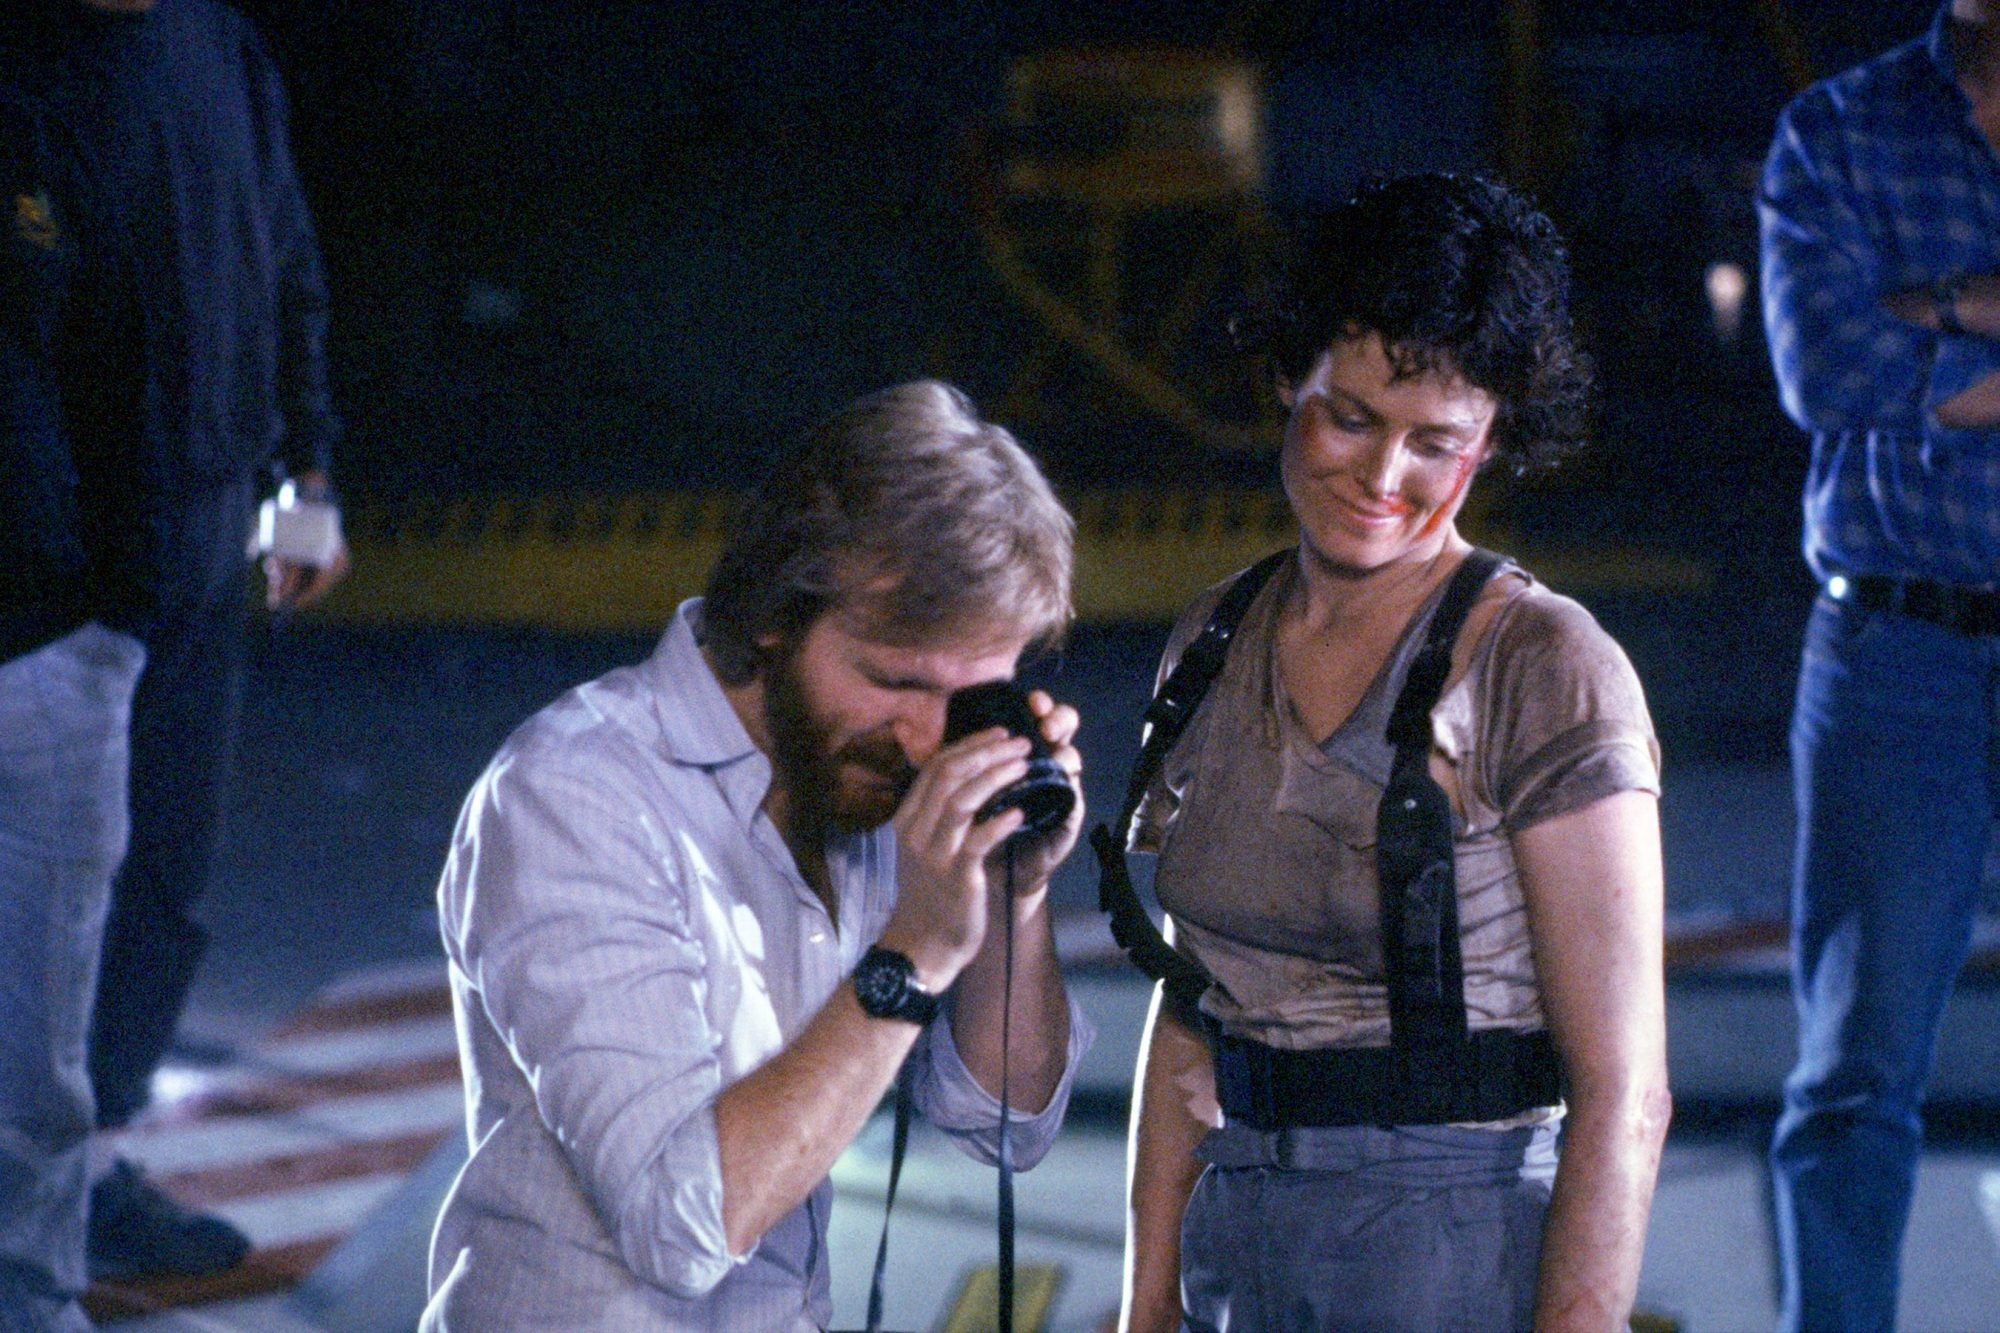 ALIENS, from left: director James Cameron, Sigourney Weaver, on set, 1986, TM and Copyright © 20th